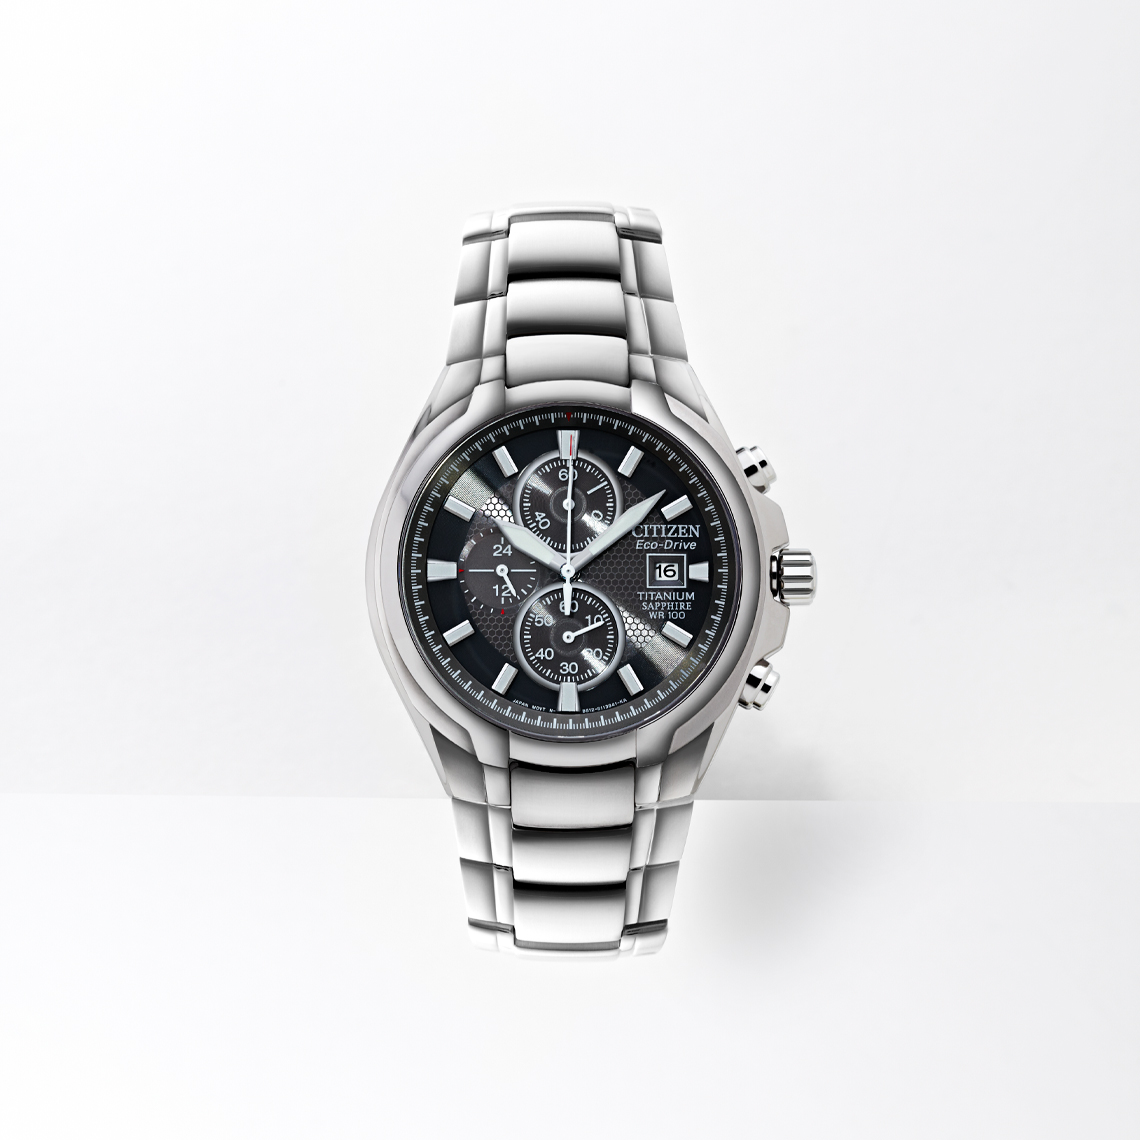 CITIZEN WATCH 2.jpg